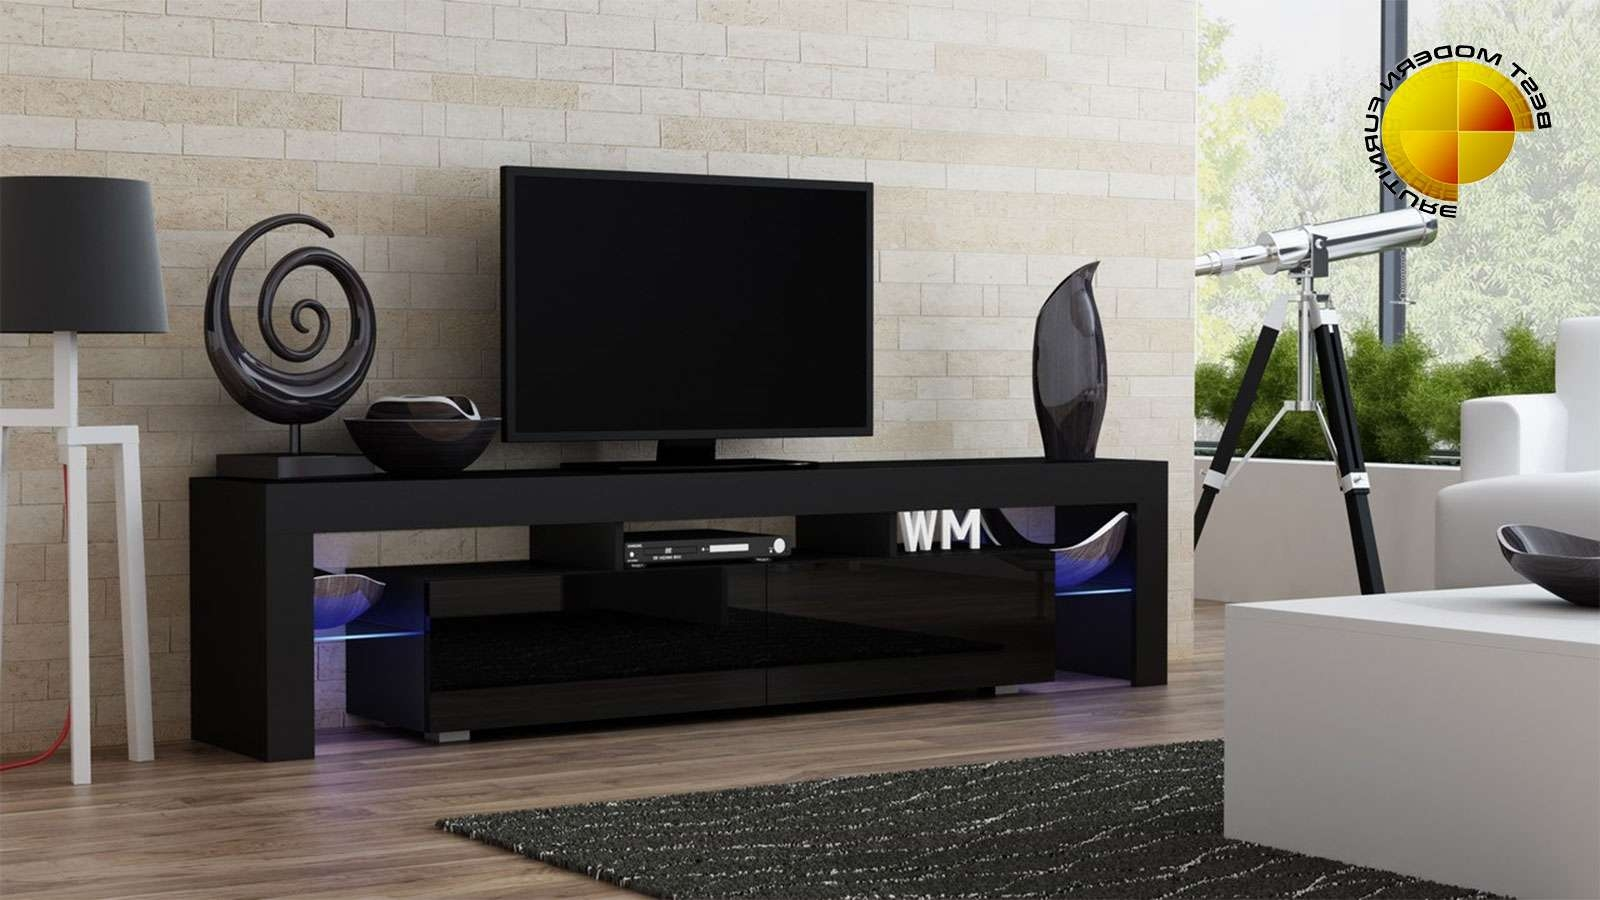 Modern Tv Stand 200cm High Gloss Cabinet Rgb Led Lights Black Unit Throughout Black Modern Tv Stands (View 7 of 15)